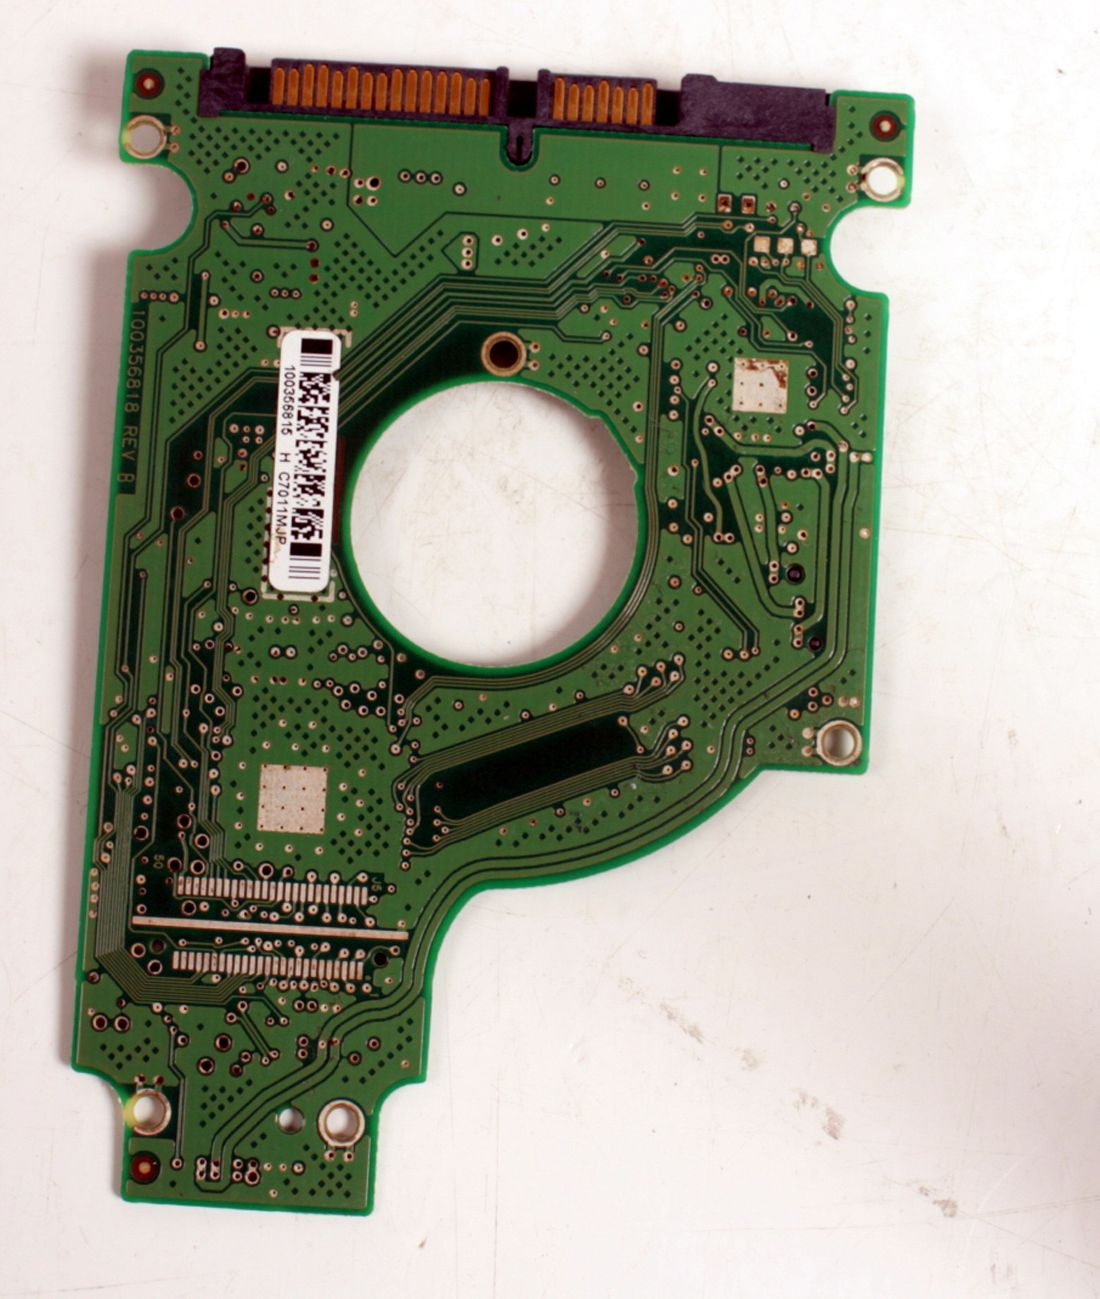 SEAGATE ST920217AS 20GB 2,5 SATA HARD DRIVE / PCB (CIRCUIT BOARD) ONLY FOR DATA